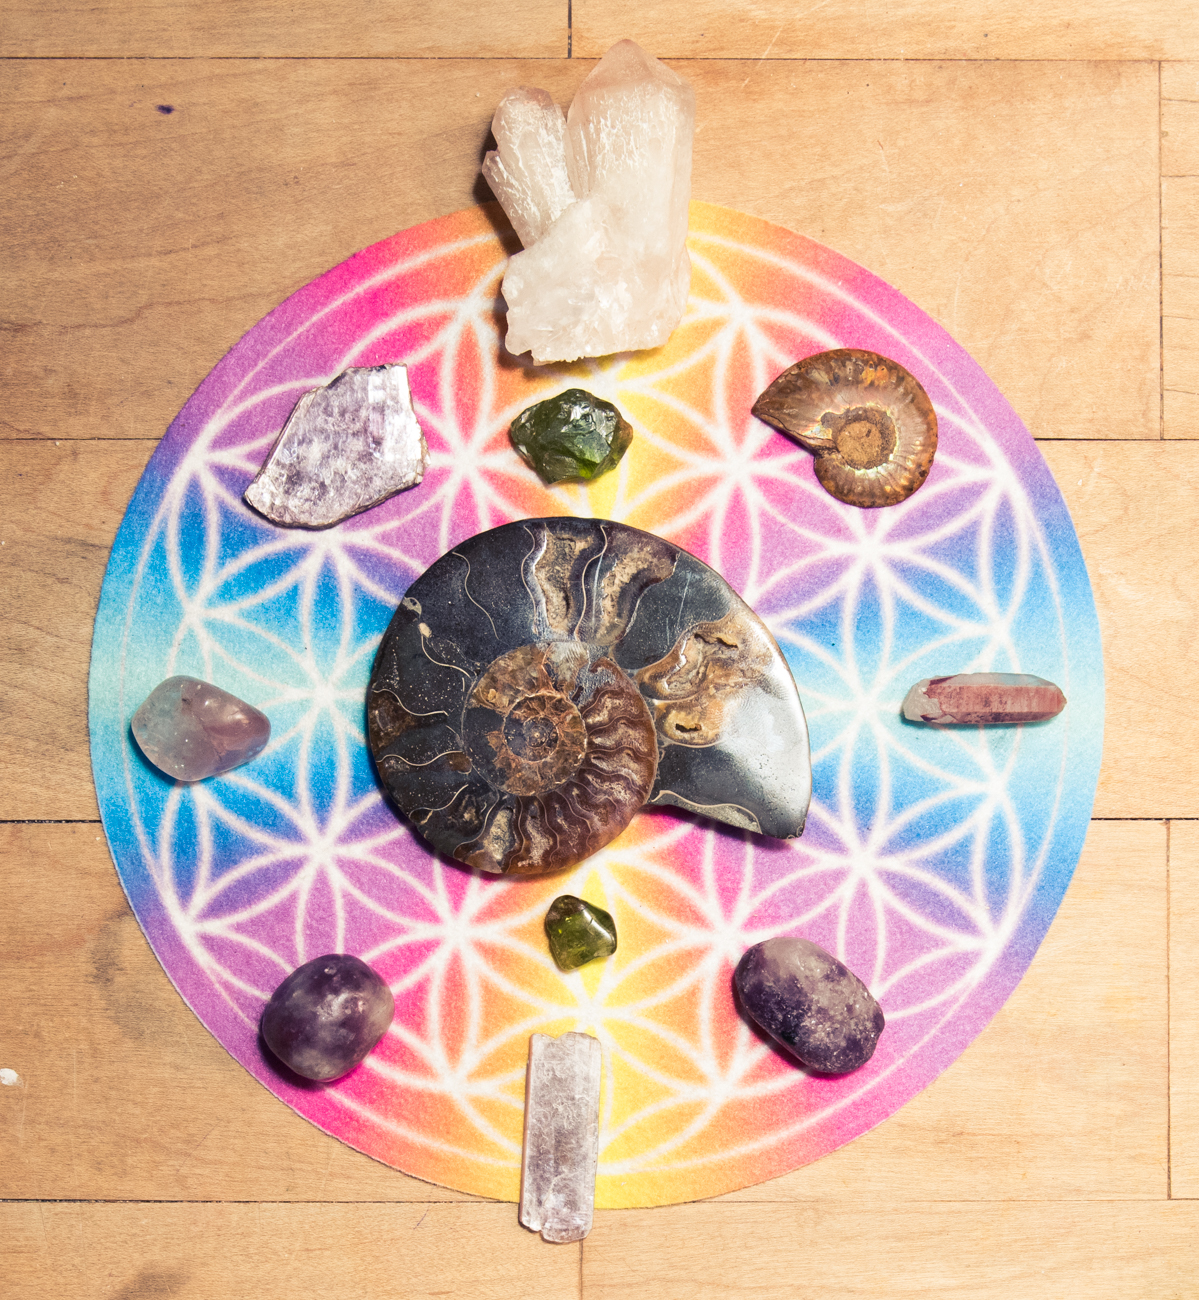 A Session With Kylie Jenner's Crystal Healer - The Coveteur - Coveteur